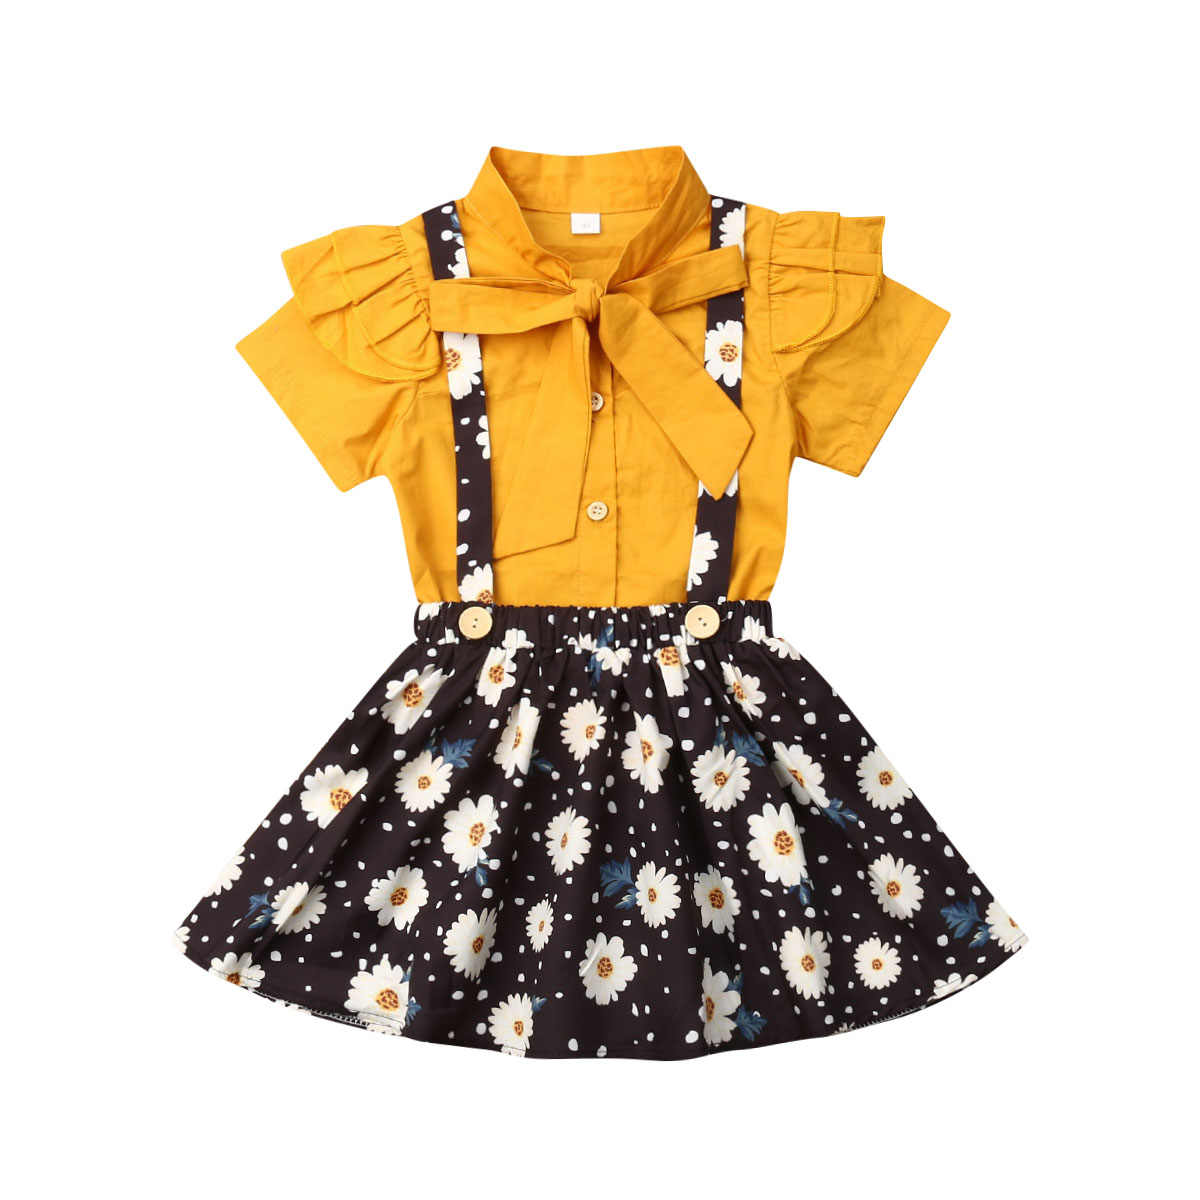 1-4Y Summer Cute Infant Baby Girls Clothes Sets Bow Yellow Solid Shirts Tops+Sunflowers Print Strap Dress 2pcs